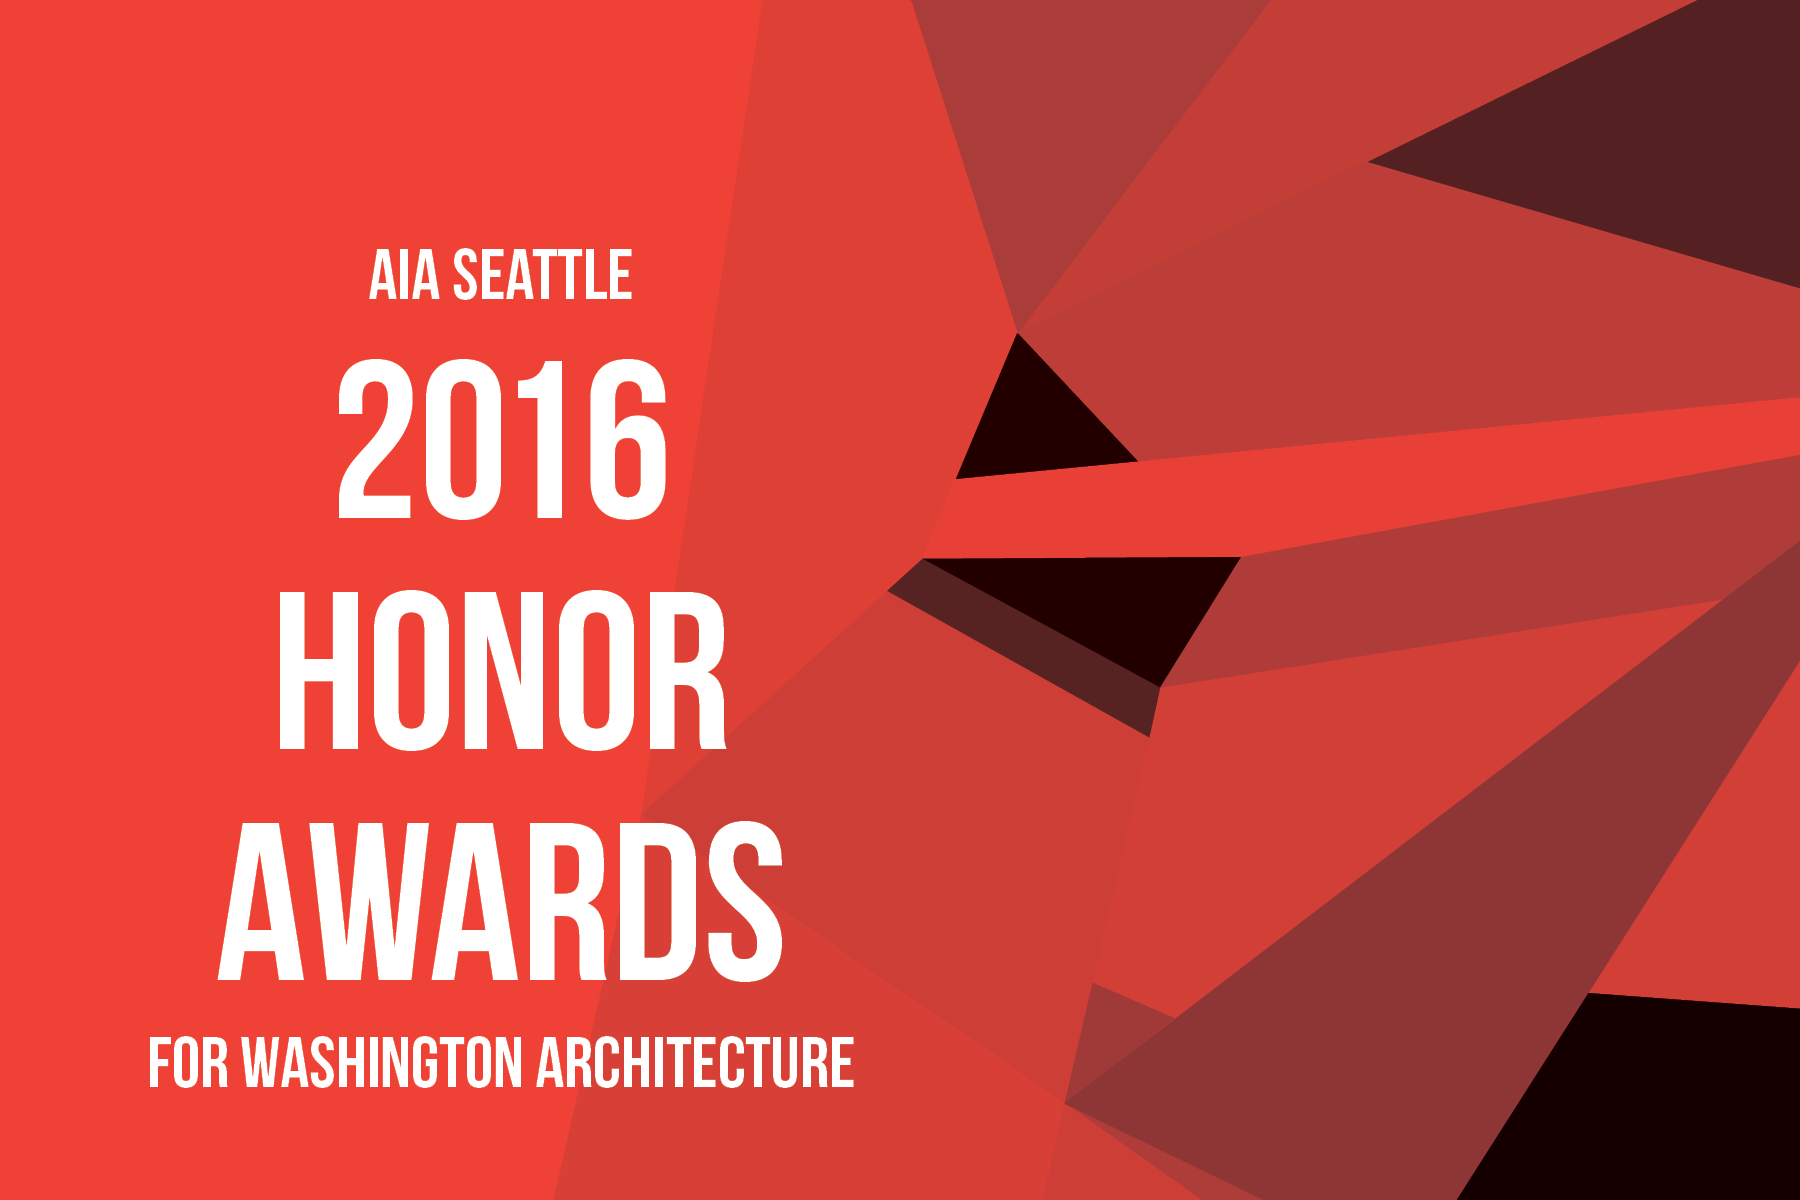 The AIA Seattle Honor Awards are the ideal platform to recognize the diverse perspectives, scales and typologies that encompass the practice of architecture in our region.